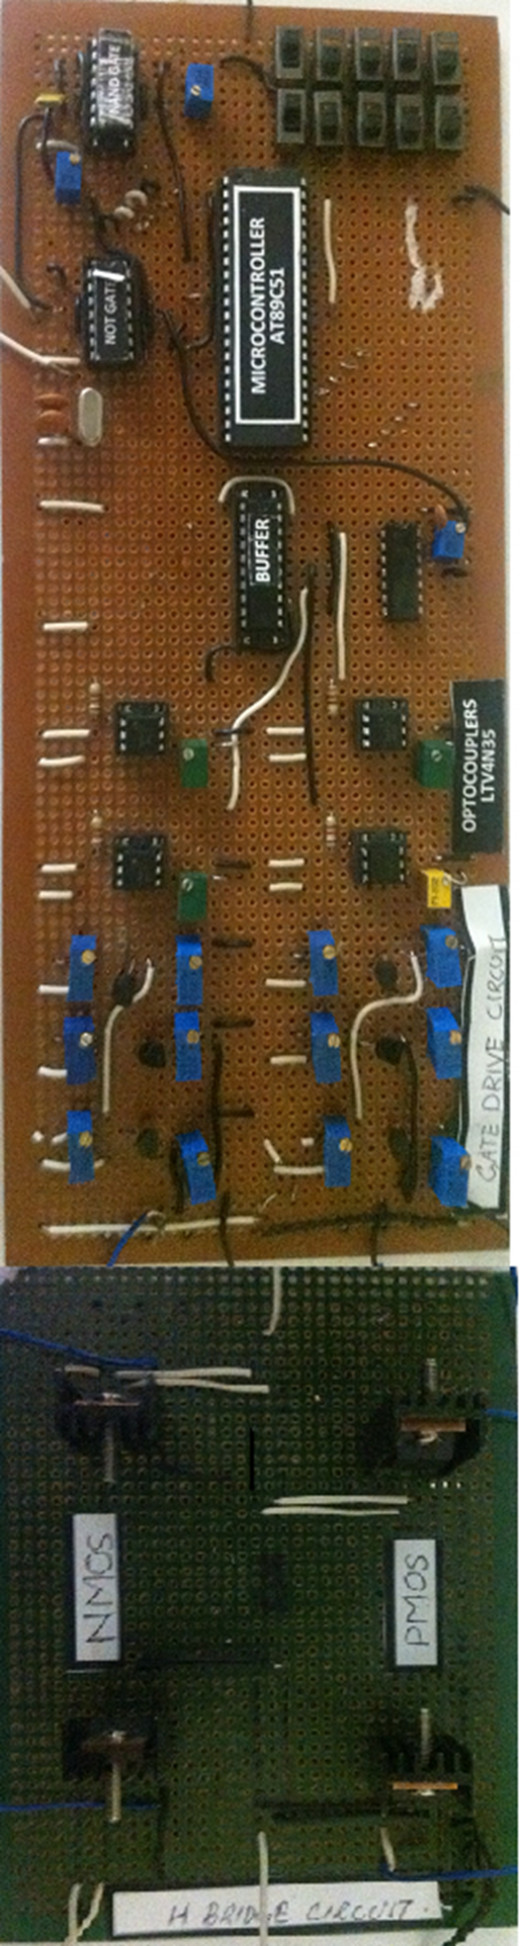 Hardware implementation of simulated circuit.